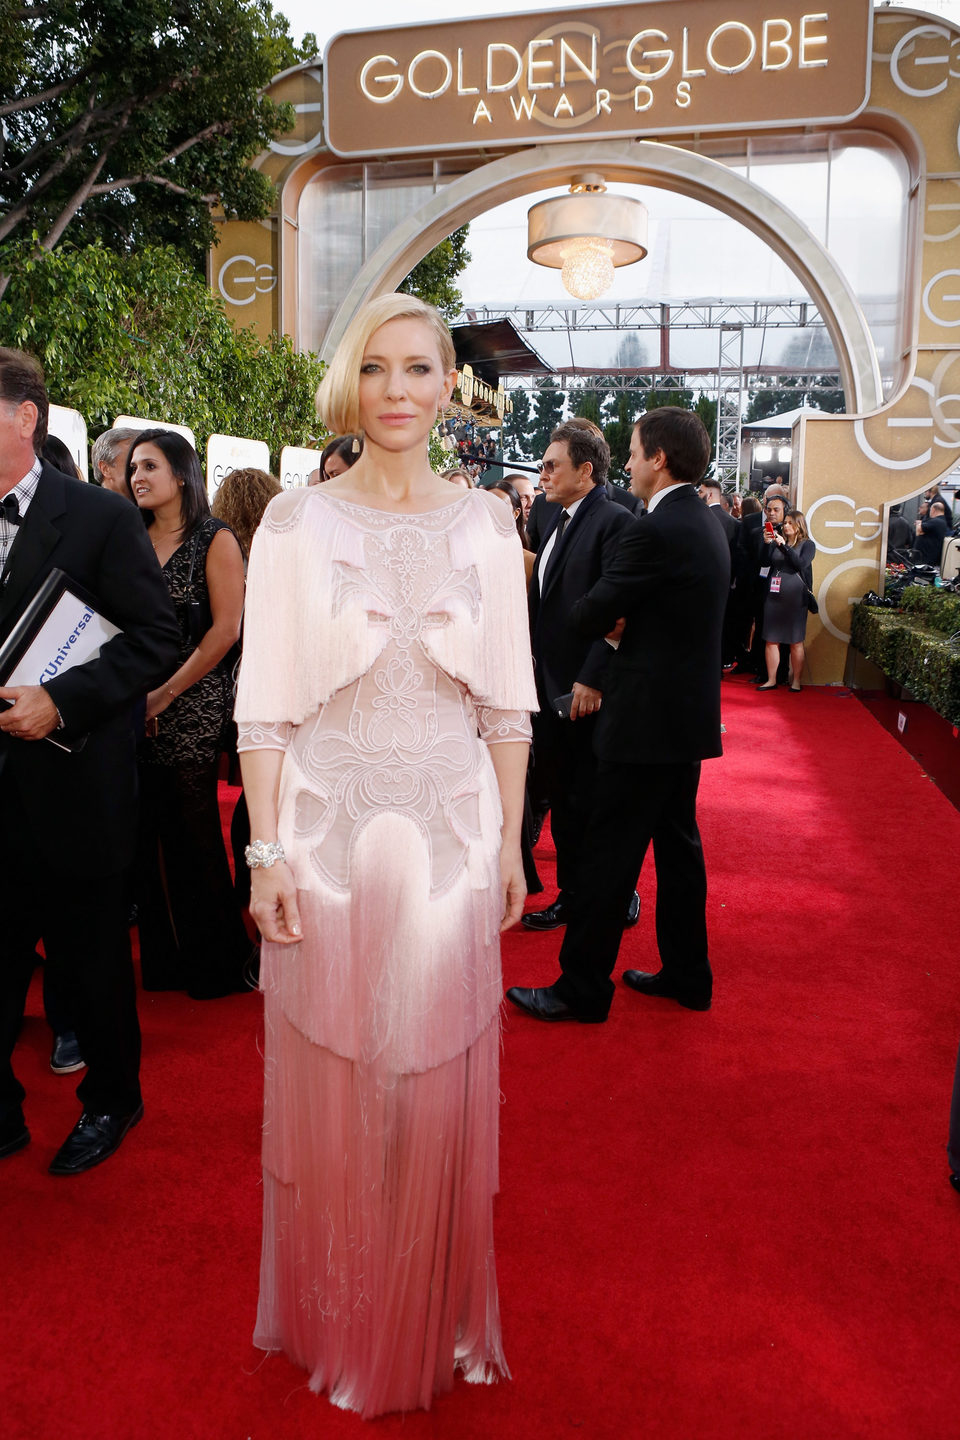 Cate Blanchett in the 2016 Golden Globes red carpet